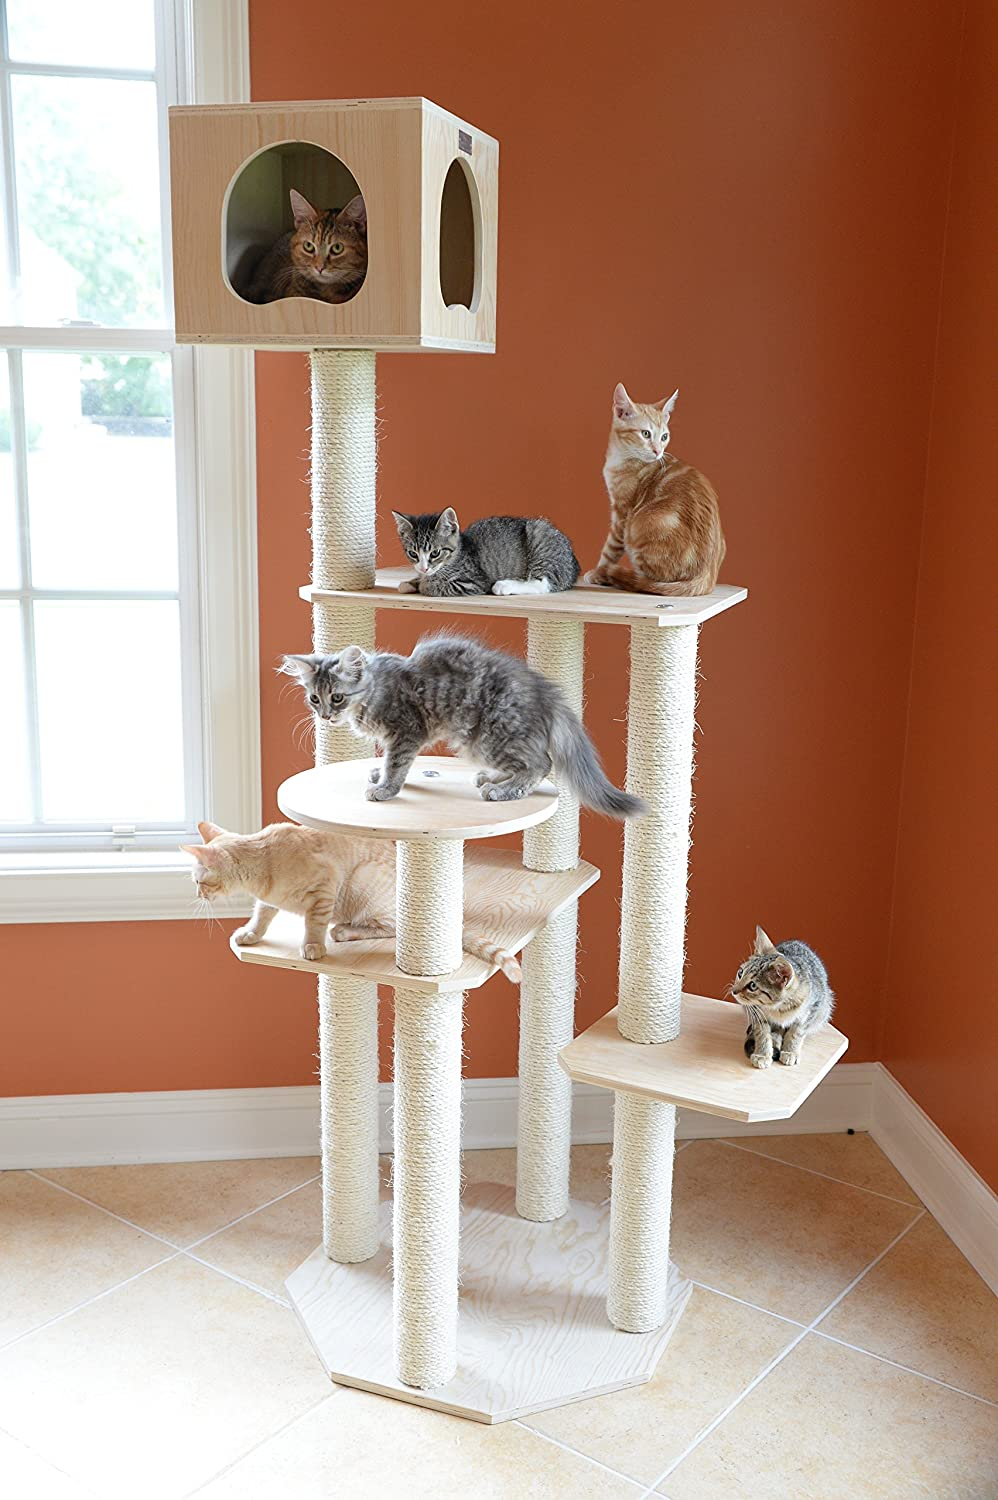 This cat tree without carpet has 4 scratching posts covered in sisal from tip to top, 4 platforms and one sleeping condo/cubby.